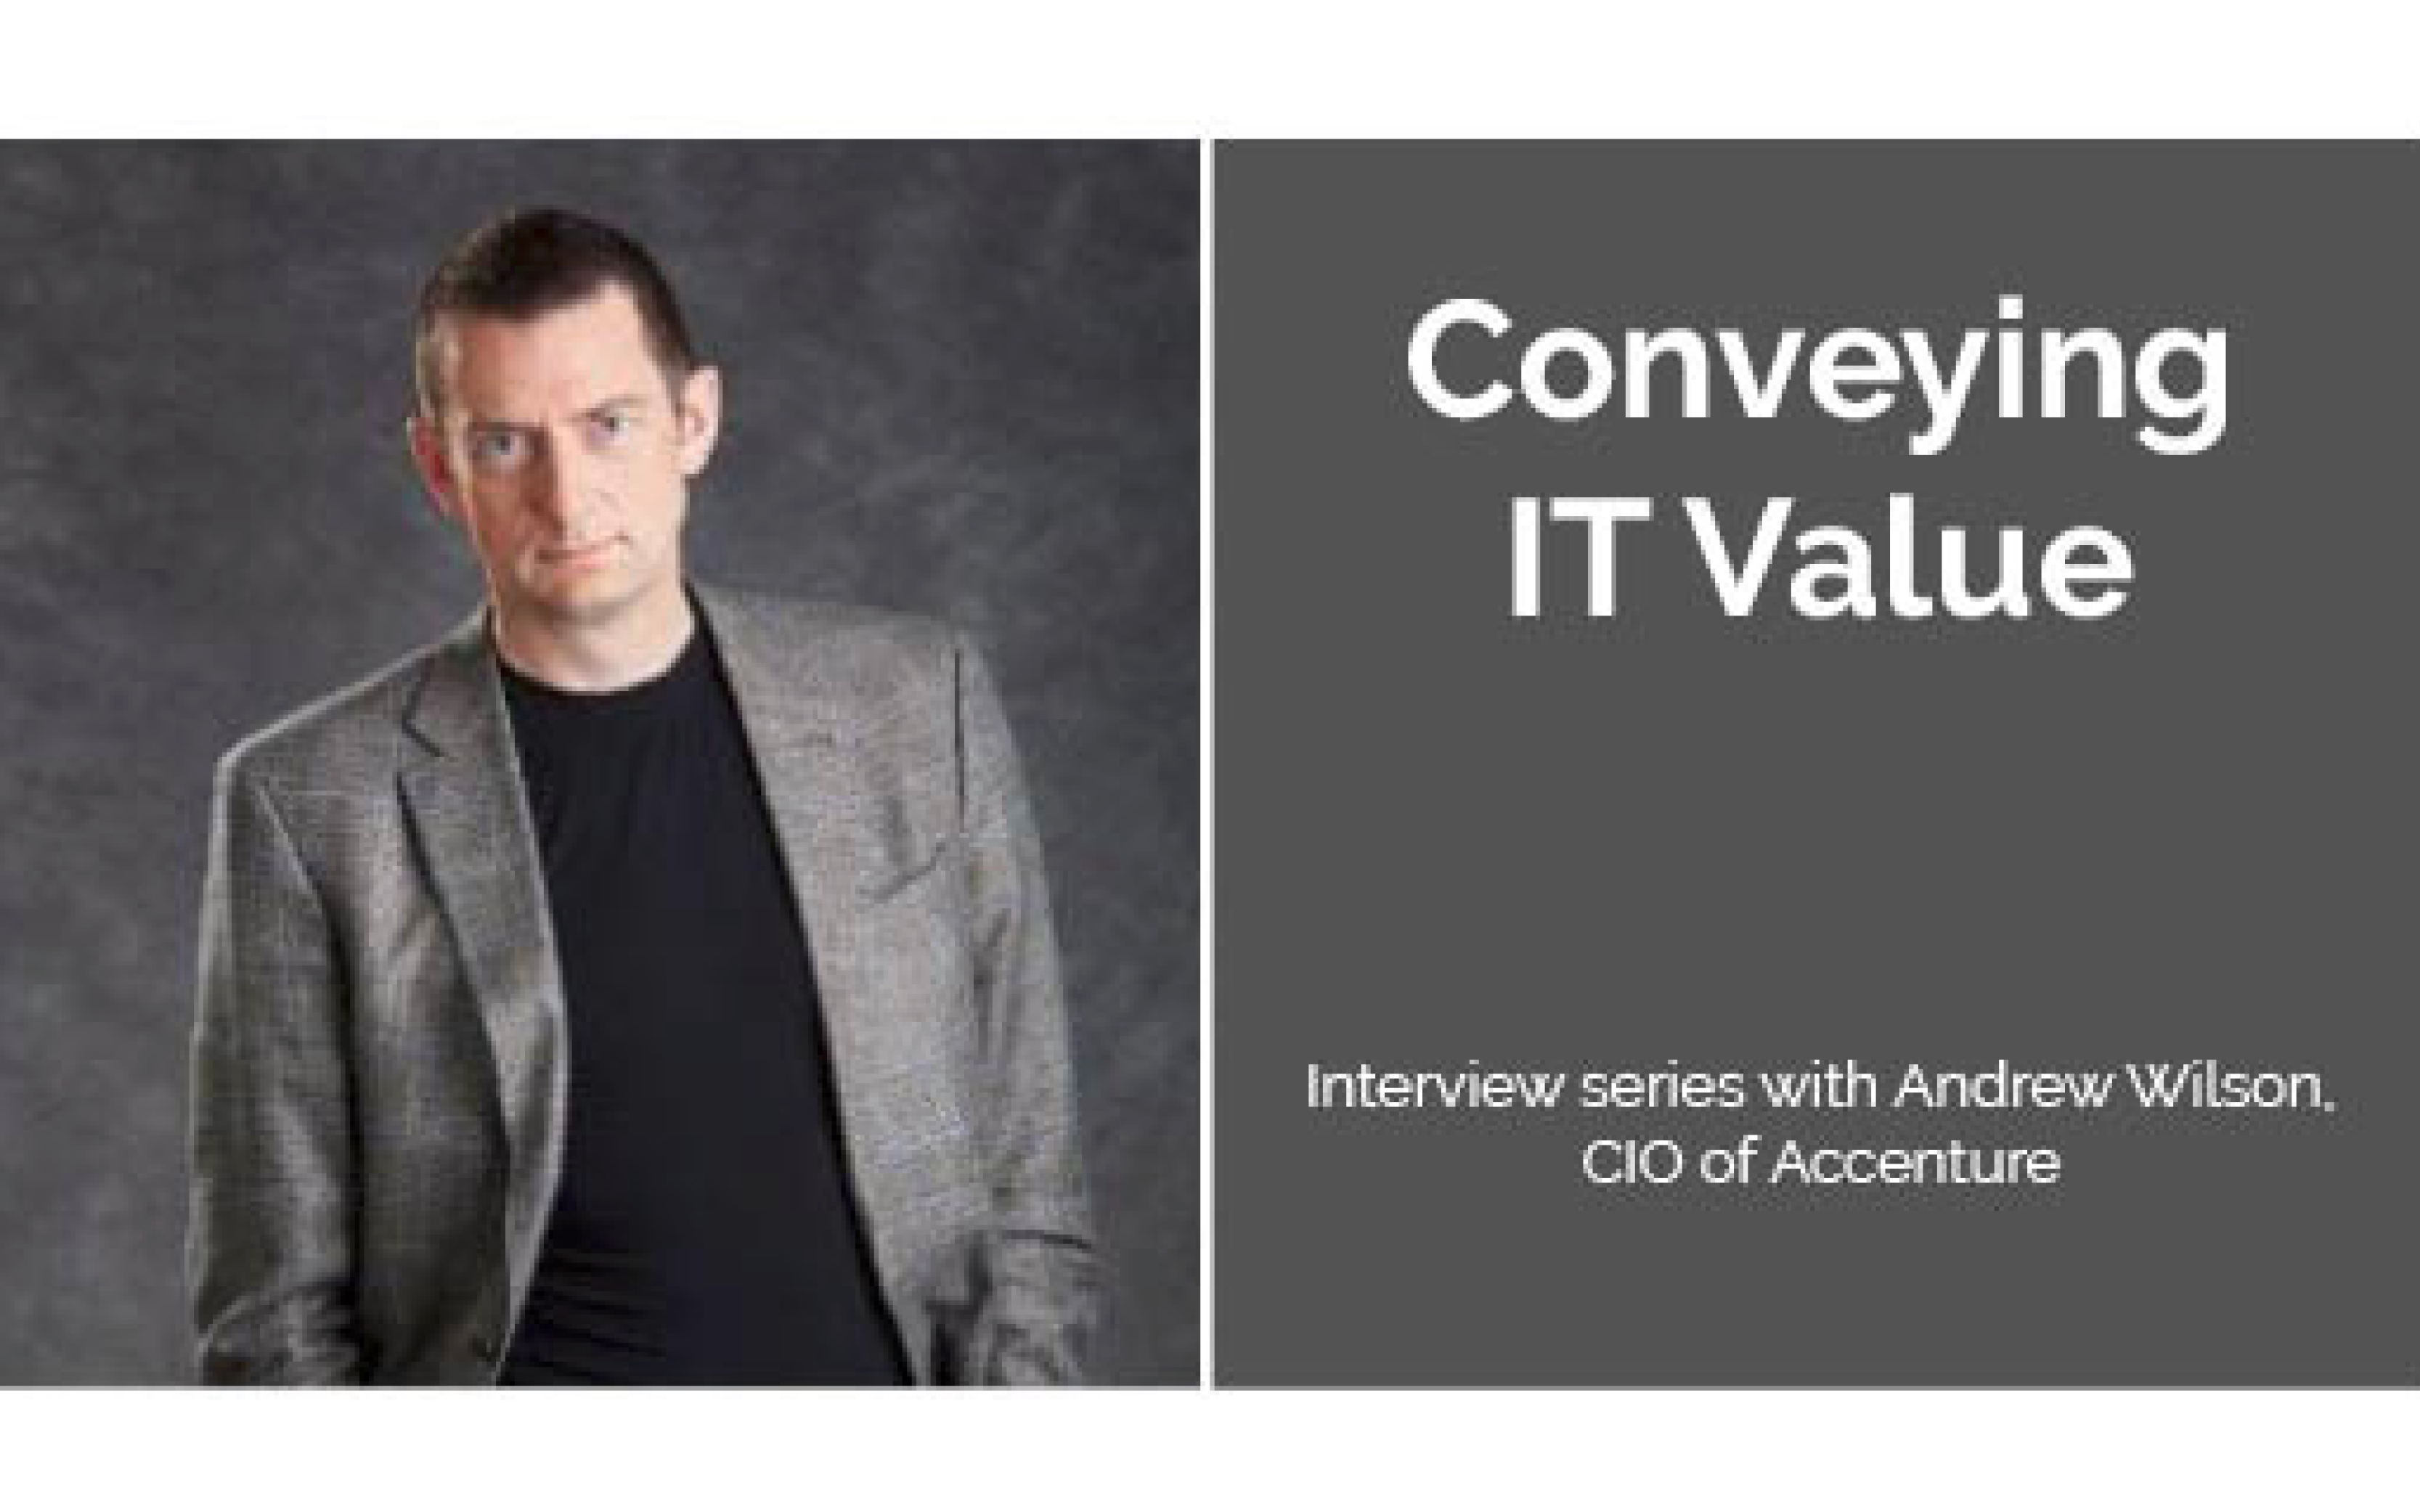 Accenture's CIO On Conveying IT Value [Interview Series Part 2]